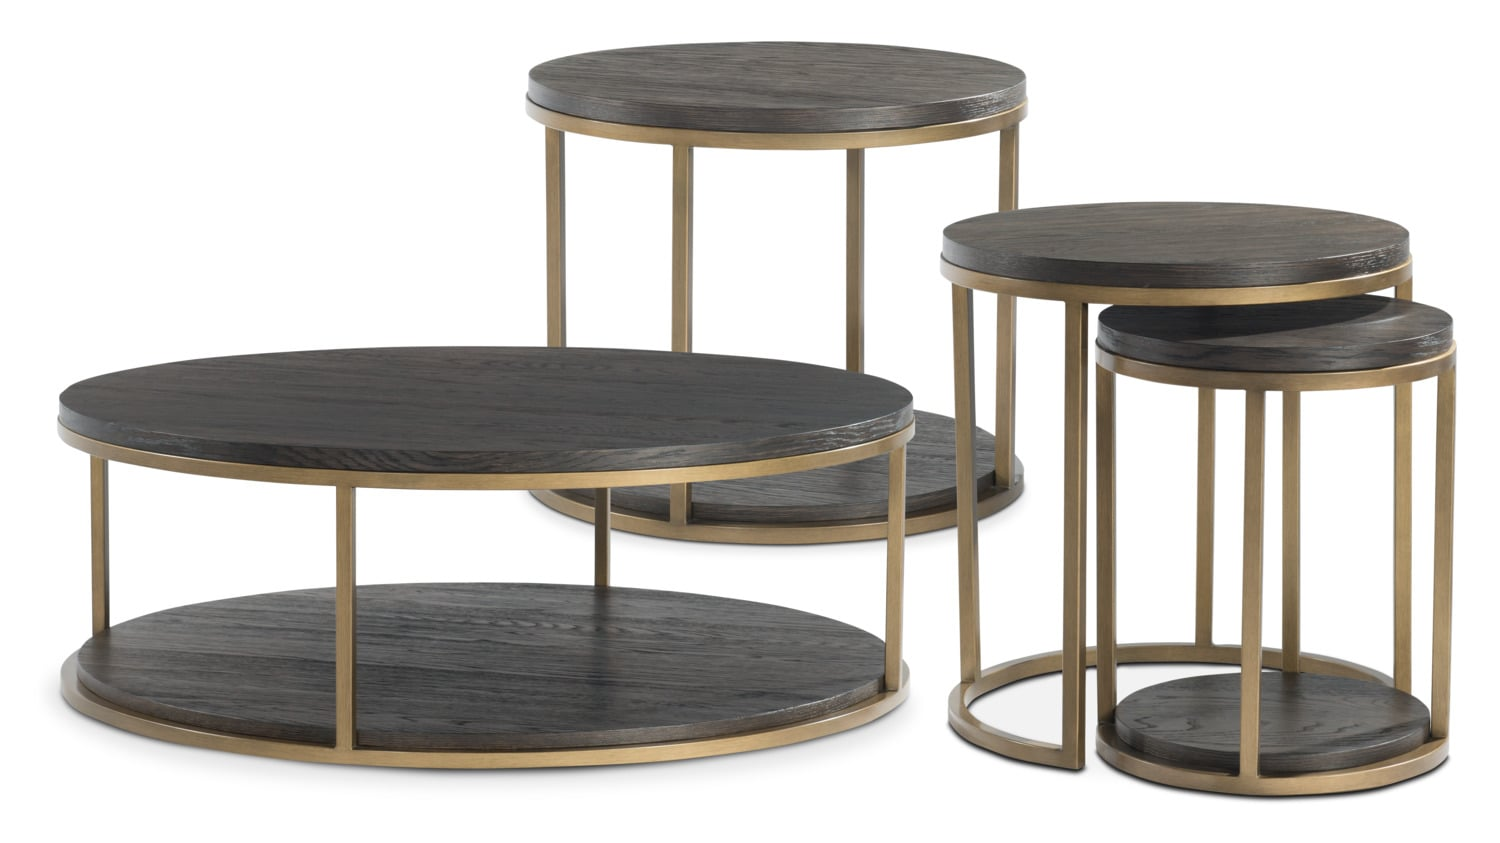 The Malibu Metal Occasional Collection - Umber